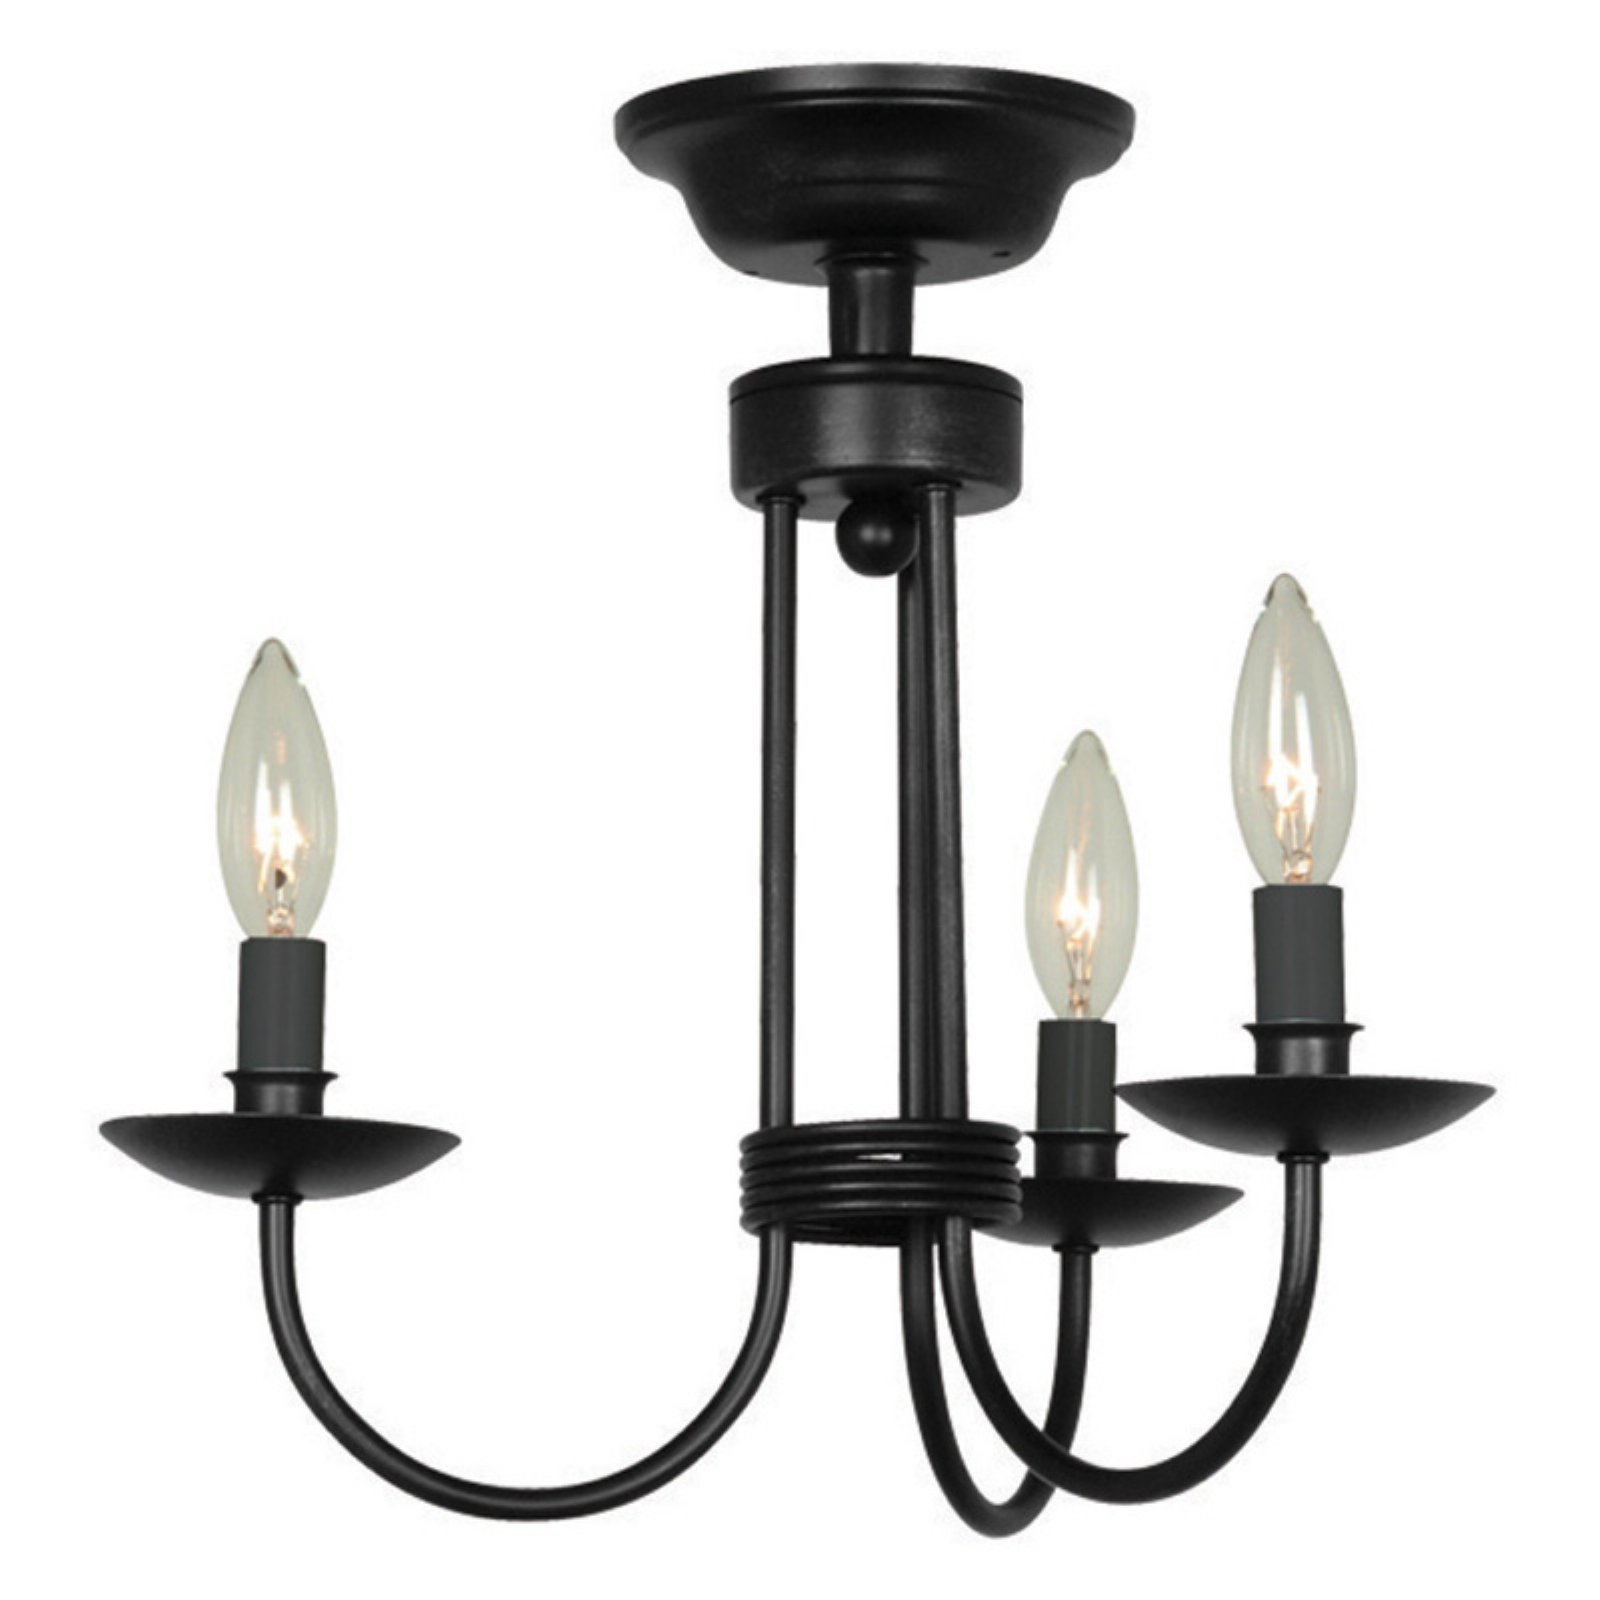 Artcraft Wrought Iron Ac1783 Semi Flush Mount Light Black Regarding Suki 5 Light Shaded Chandeliers (View 3 of 30)